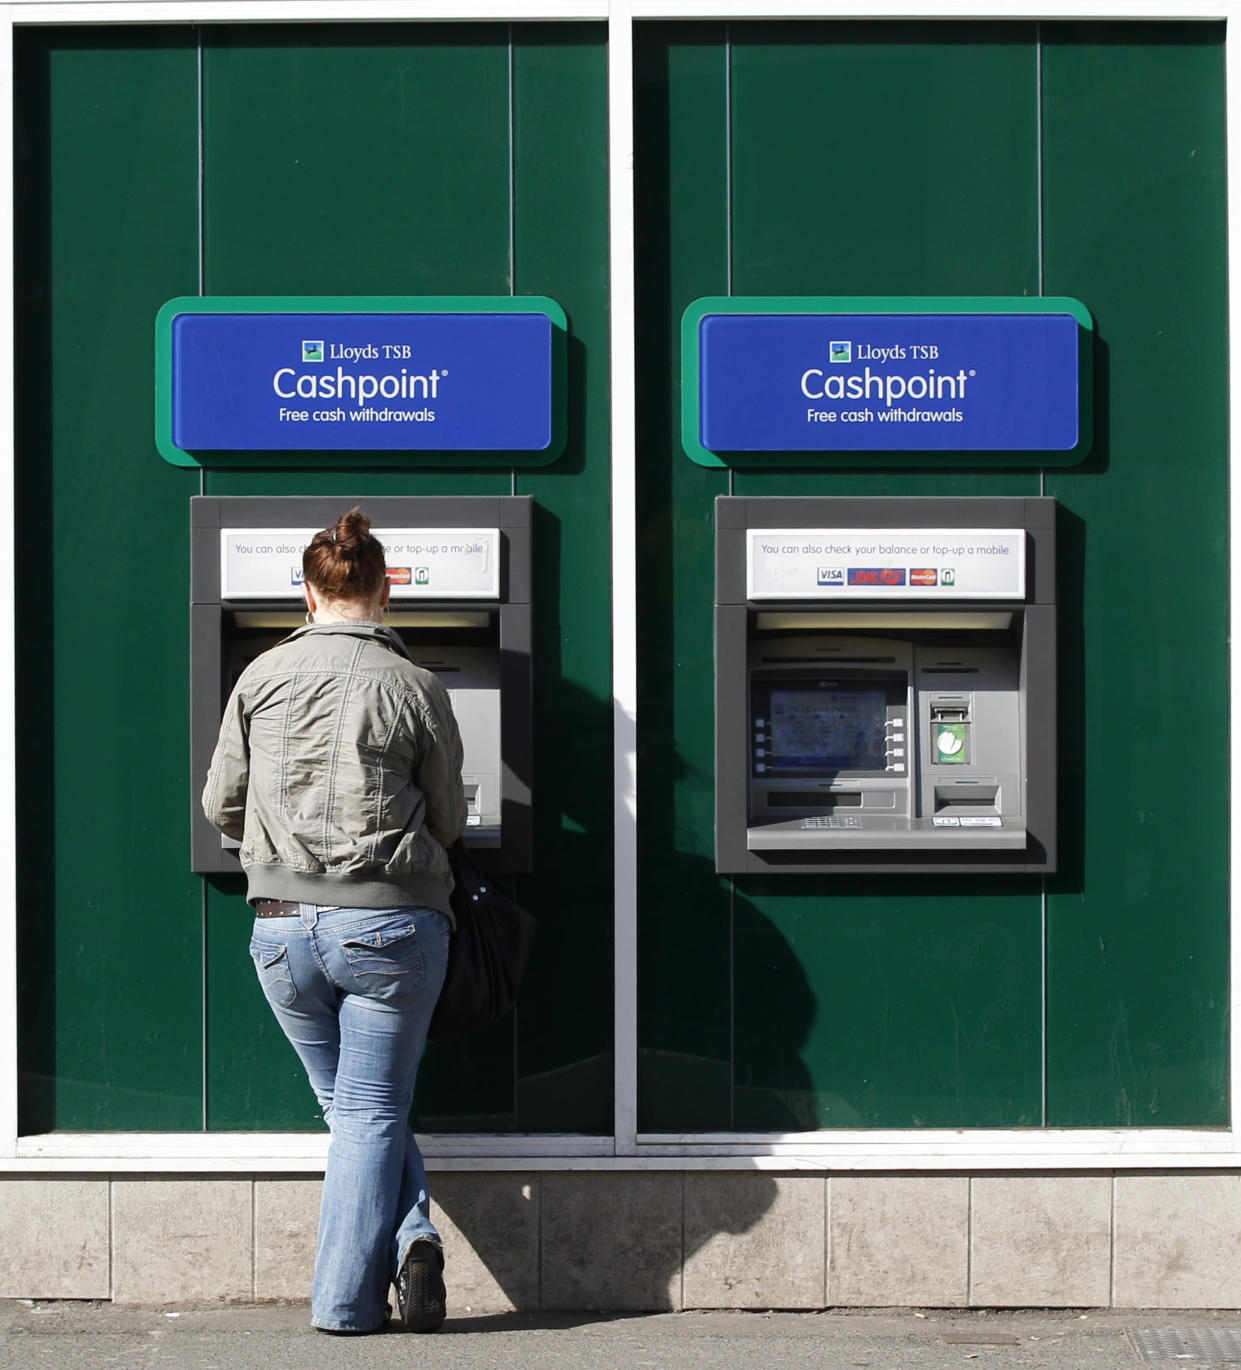 A woman uses a Lloyds TSB Cashpoint machine in Loughborough, central England April 27, 2010.  Lloyds Banking Group returned to profit in the first three months of this year, earlier than expected, as losses on both retail and commercial bad debts for Britain's largest bank continue to fall.  REUTERS/Darren Staples   (BRITAIN - Tags: BUSINESS)